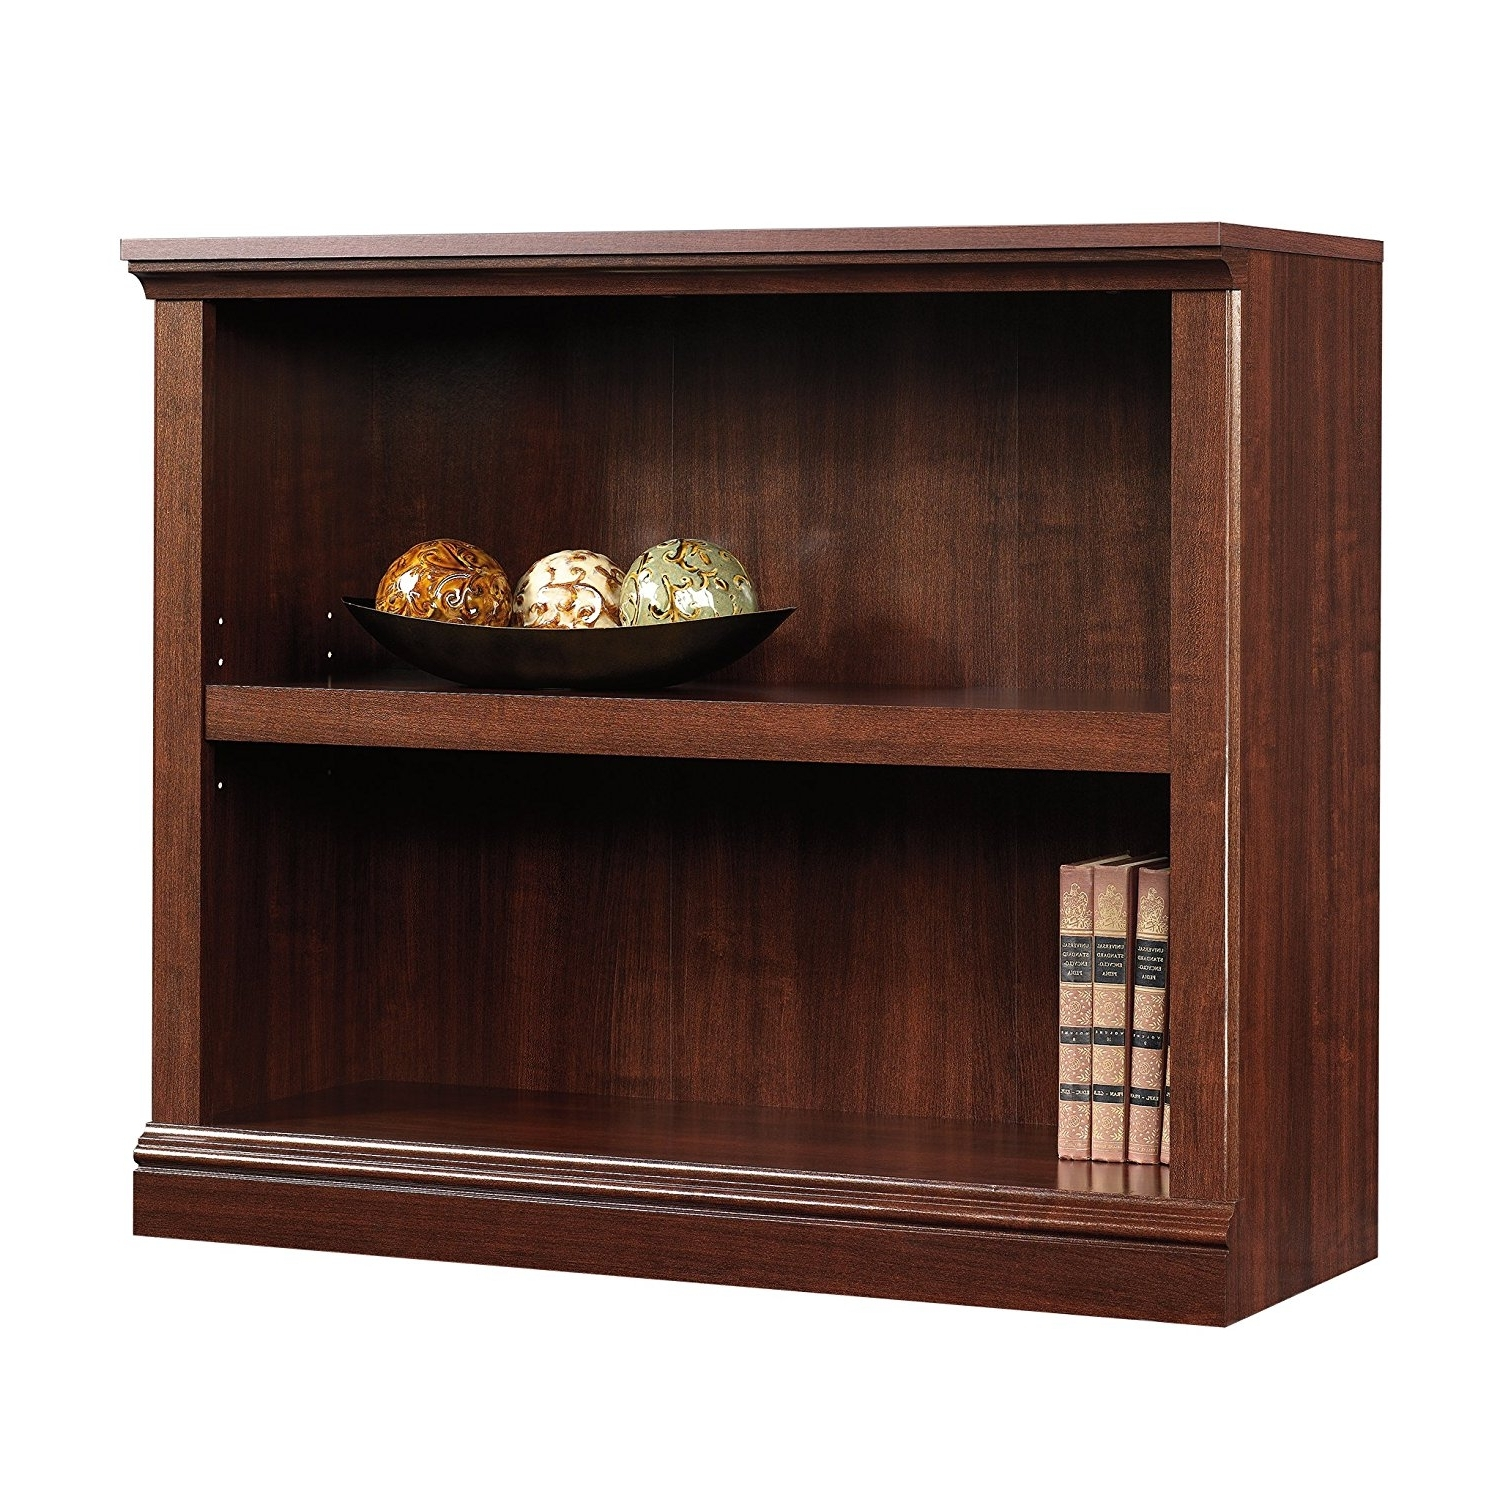 Well Liked Amazon: Sauder 2 Shelf Bookcase, Select Cherry Finish: Kitchen With Regard To Amazon Bookcases (View 15 of 15)